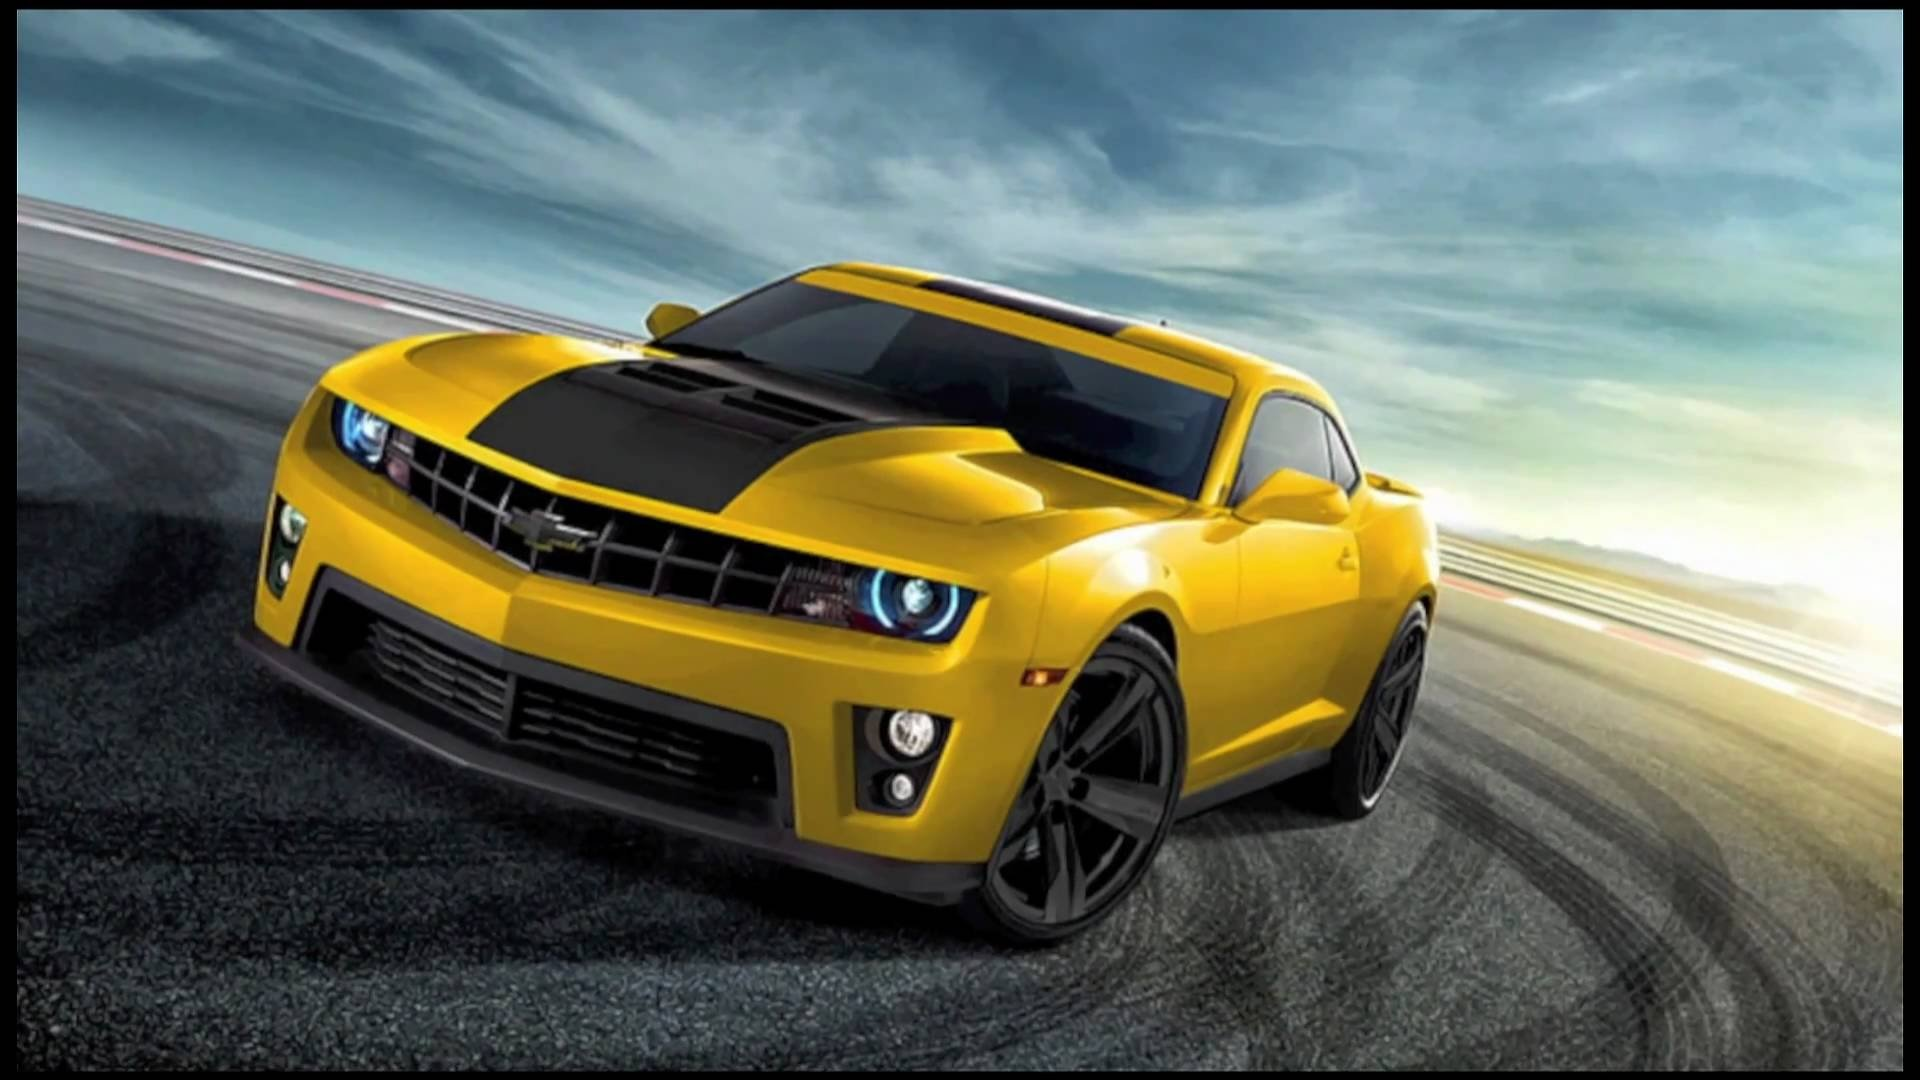 2015 chevrolet camaro zl1 car wallpapers 1920x1080